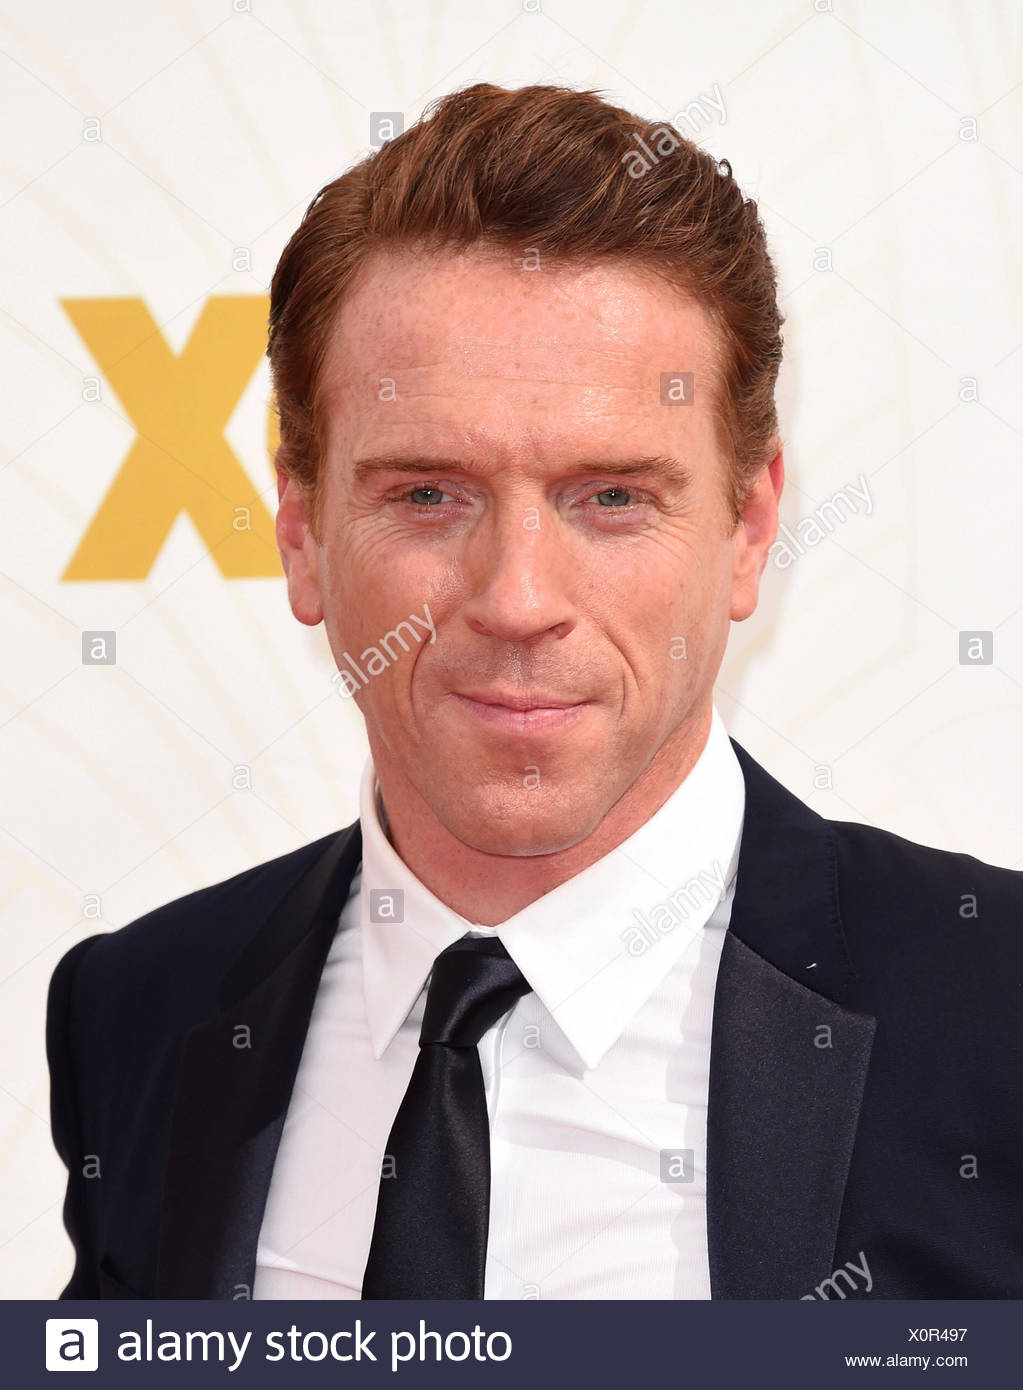 Actor Damian Lewis attends the 67th Annual Primetime Emmy Awards at Microsoft Theater on September 20, 2015 in Los Angeles, California., Additional-Rights-Clearances-NA - Stock Image